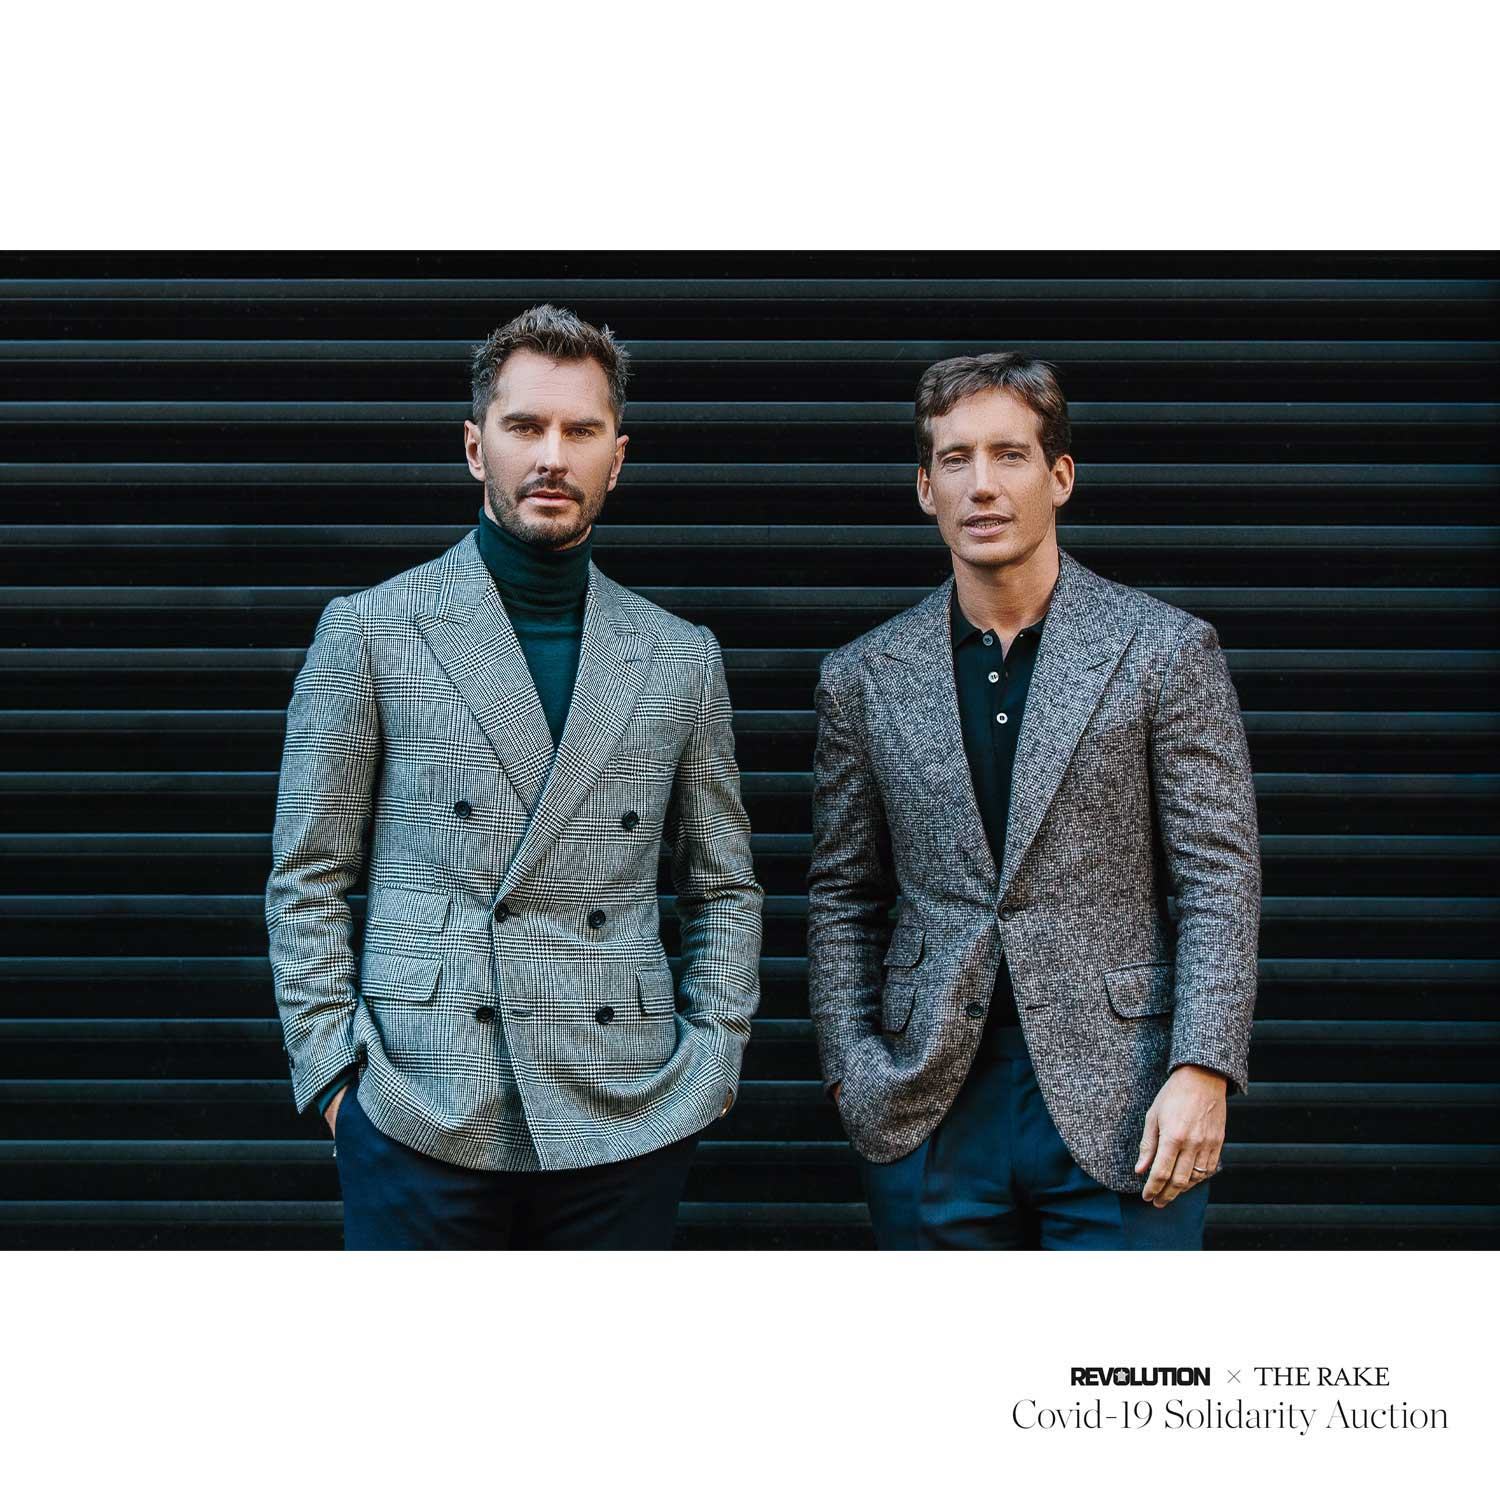 Bespoke suit experience with Thom Sweeney for Revolution x The Rake Covid-19 Solidarity Auction